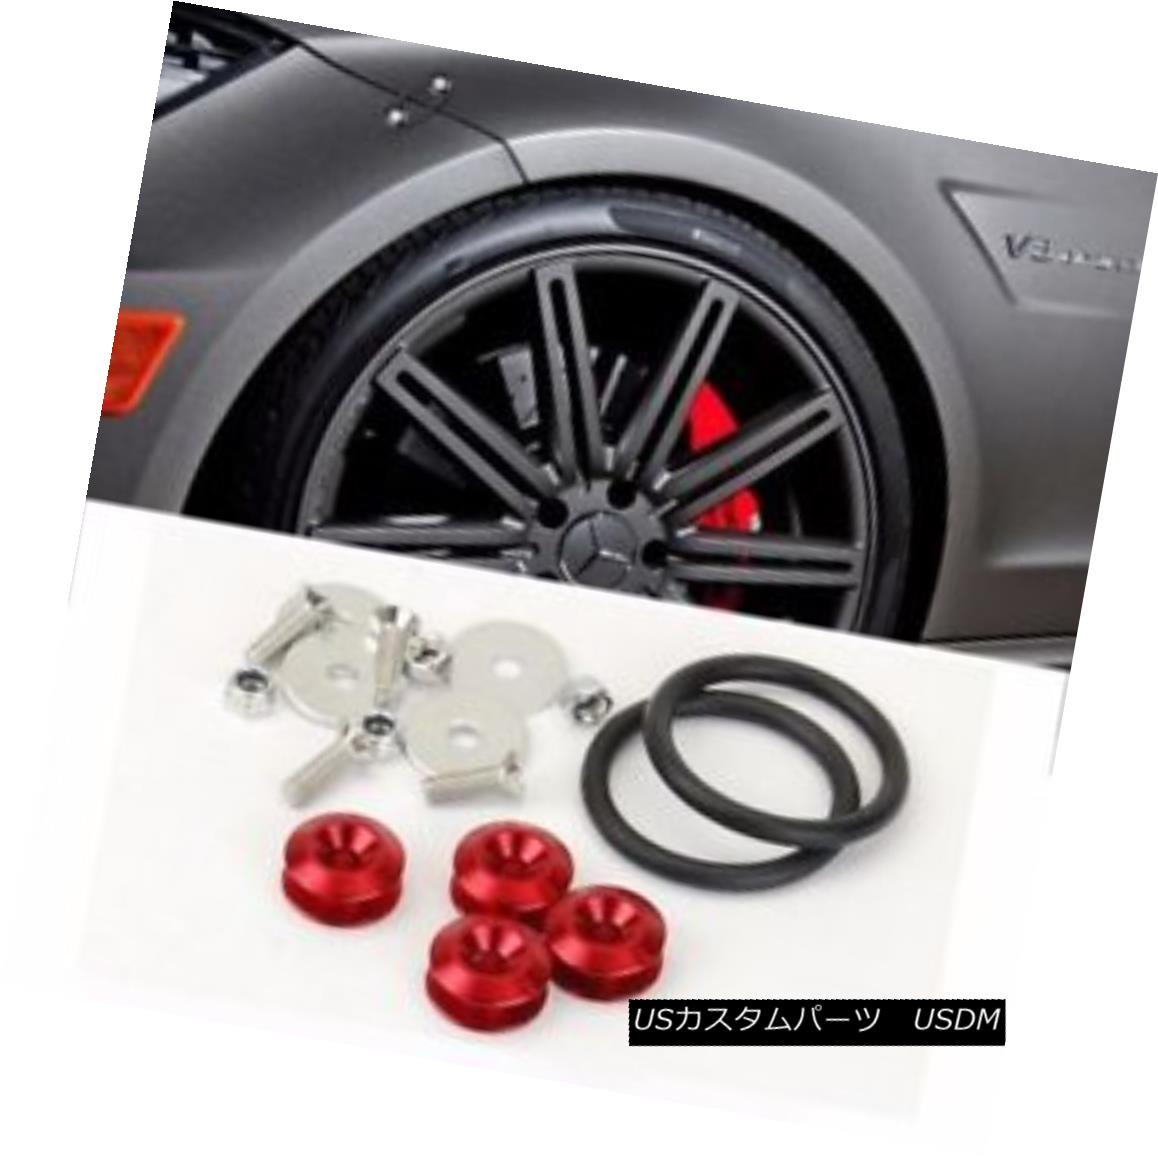 エアロパーツ Red Bolt on Fast Quick Release Secure Kit For BMW AUDI Front Rear Bumper Lip BMW AUDI用フロント・リア・バンパー・リップ